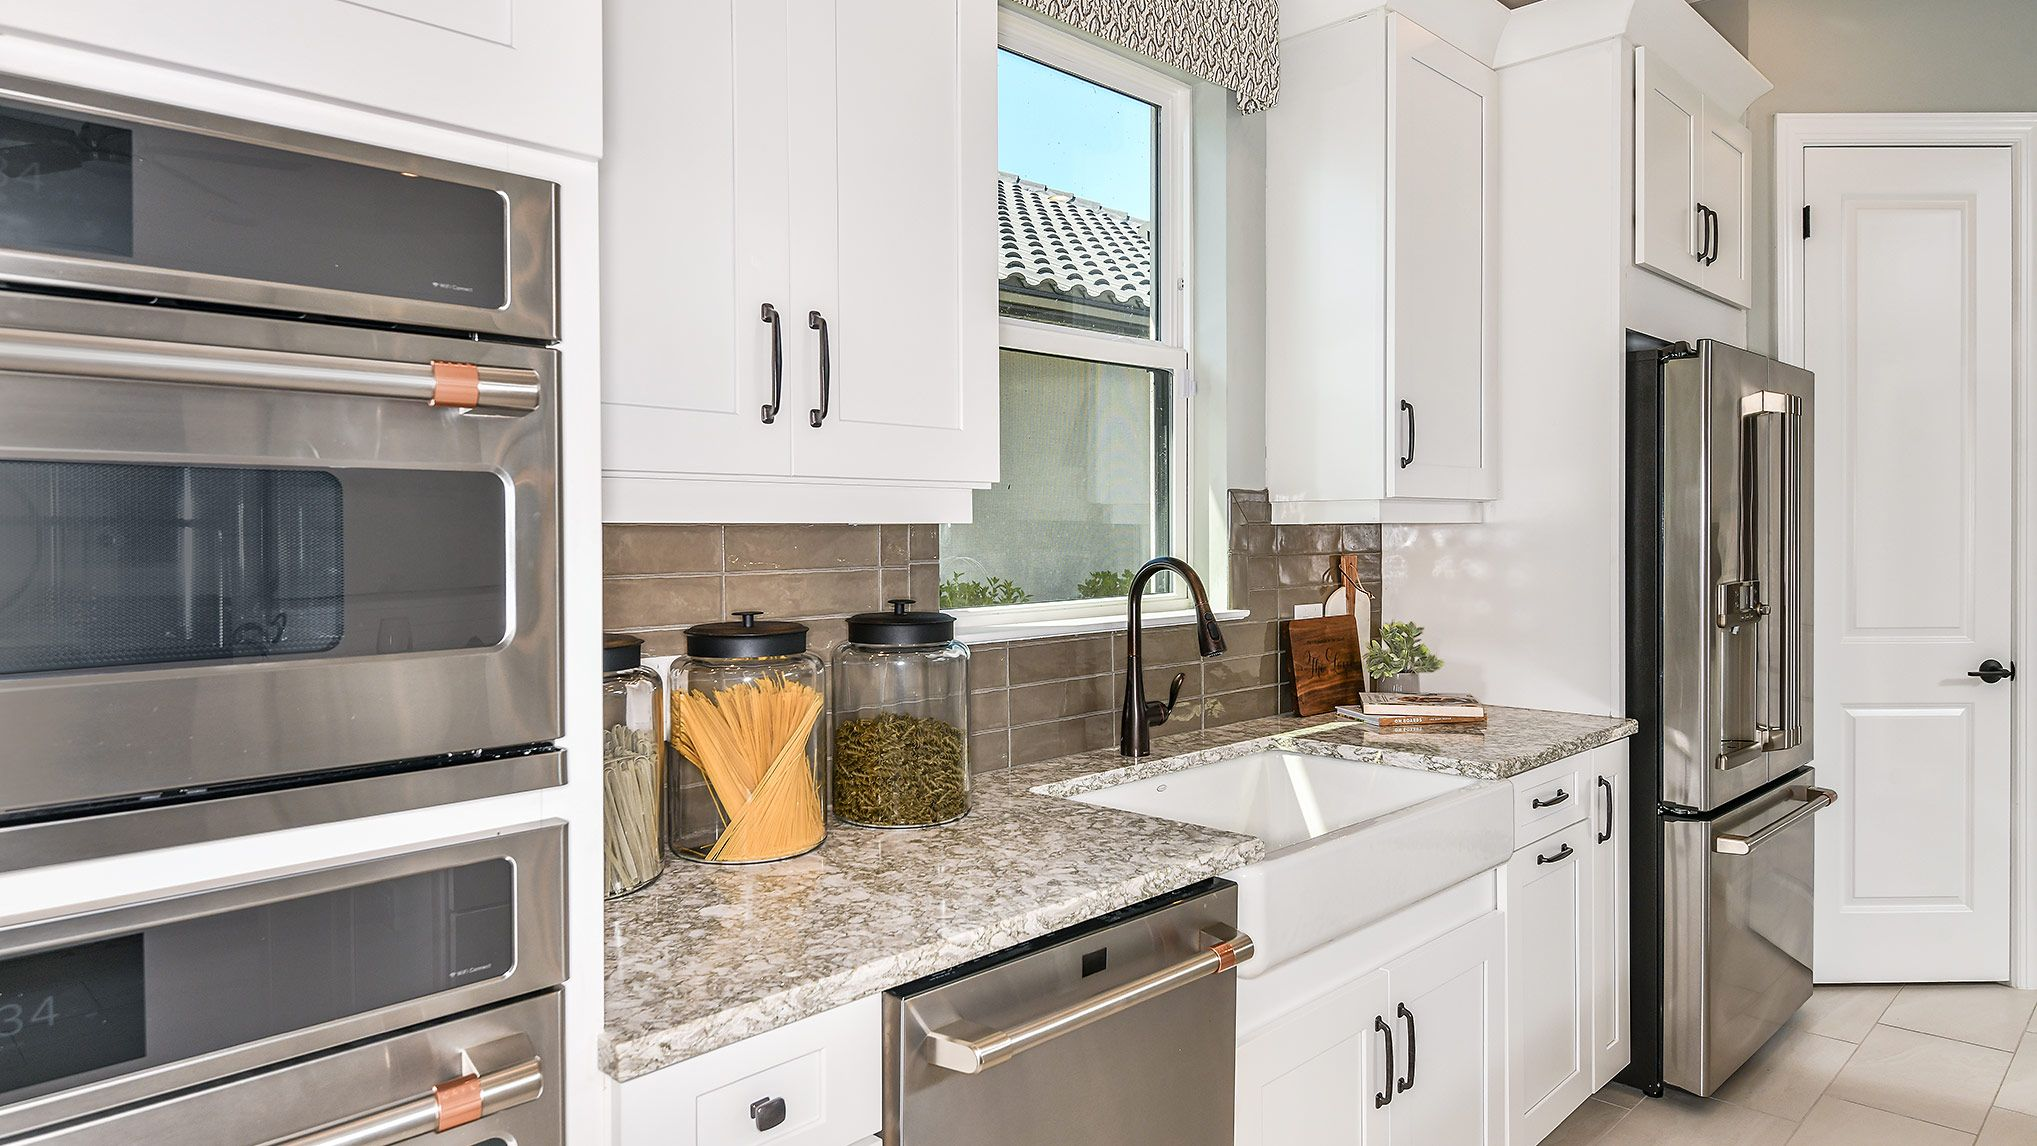 Kitchen featured in the Lazio By Taylor Morrison in Naples, FL